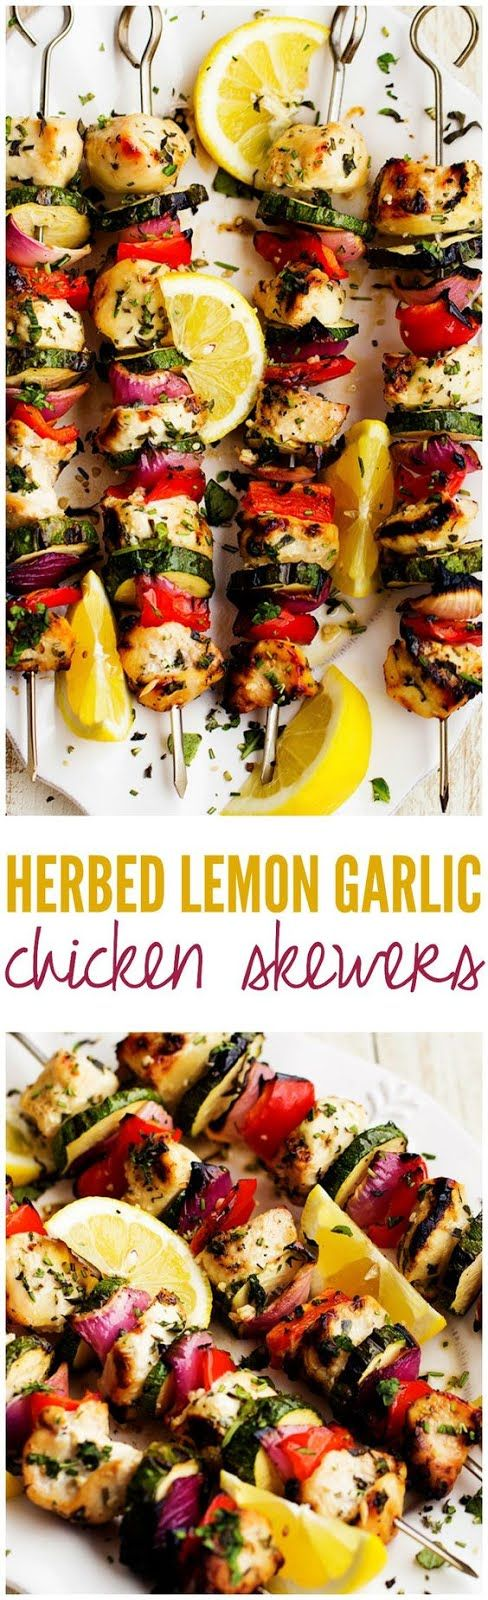 Feed a crowd the healthy way with these amazingly delicious & filling recipes to try out at your next BBQ! 1. So yummy, theseGrilled Salmon Skewers are tasty, light & healthy! 2.Herbed Lemon Garlic Chicken Skewers 3.Mediterranean Portobello Beef Burgers 4.Crispy BBQ Potato Wedges  5.Grilled Barbecue Chicken and Vegetables in Foil  …Continue reading ➞ 21 Awesome Crowd Pleasing Recipes for Your BBQ Party!